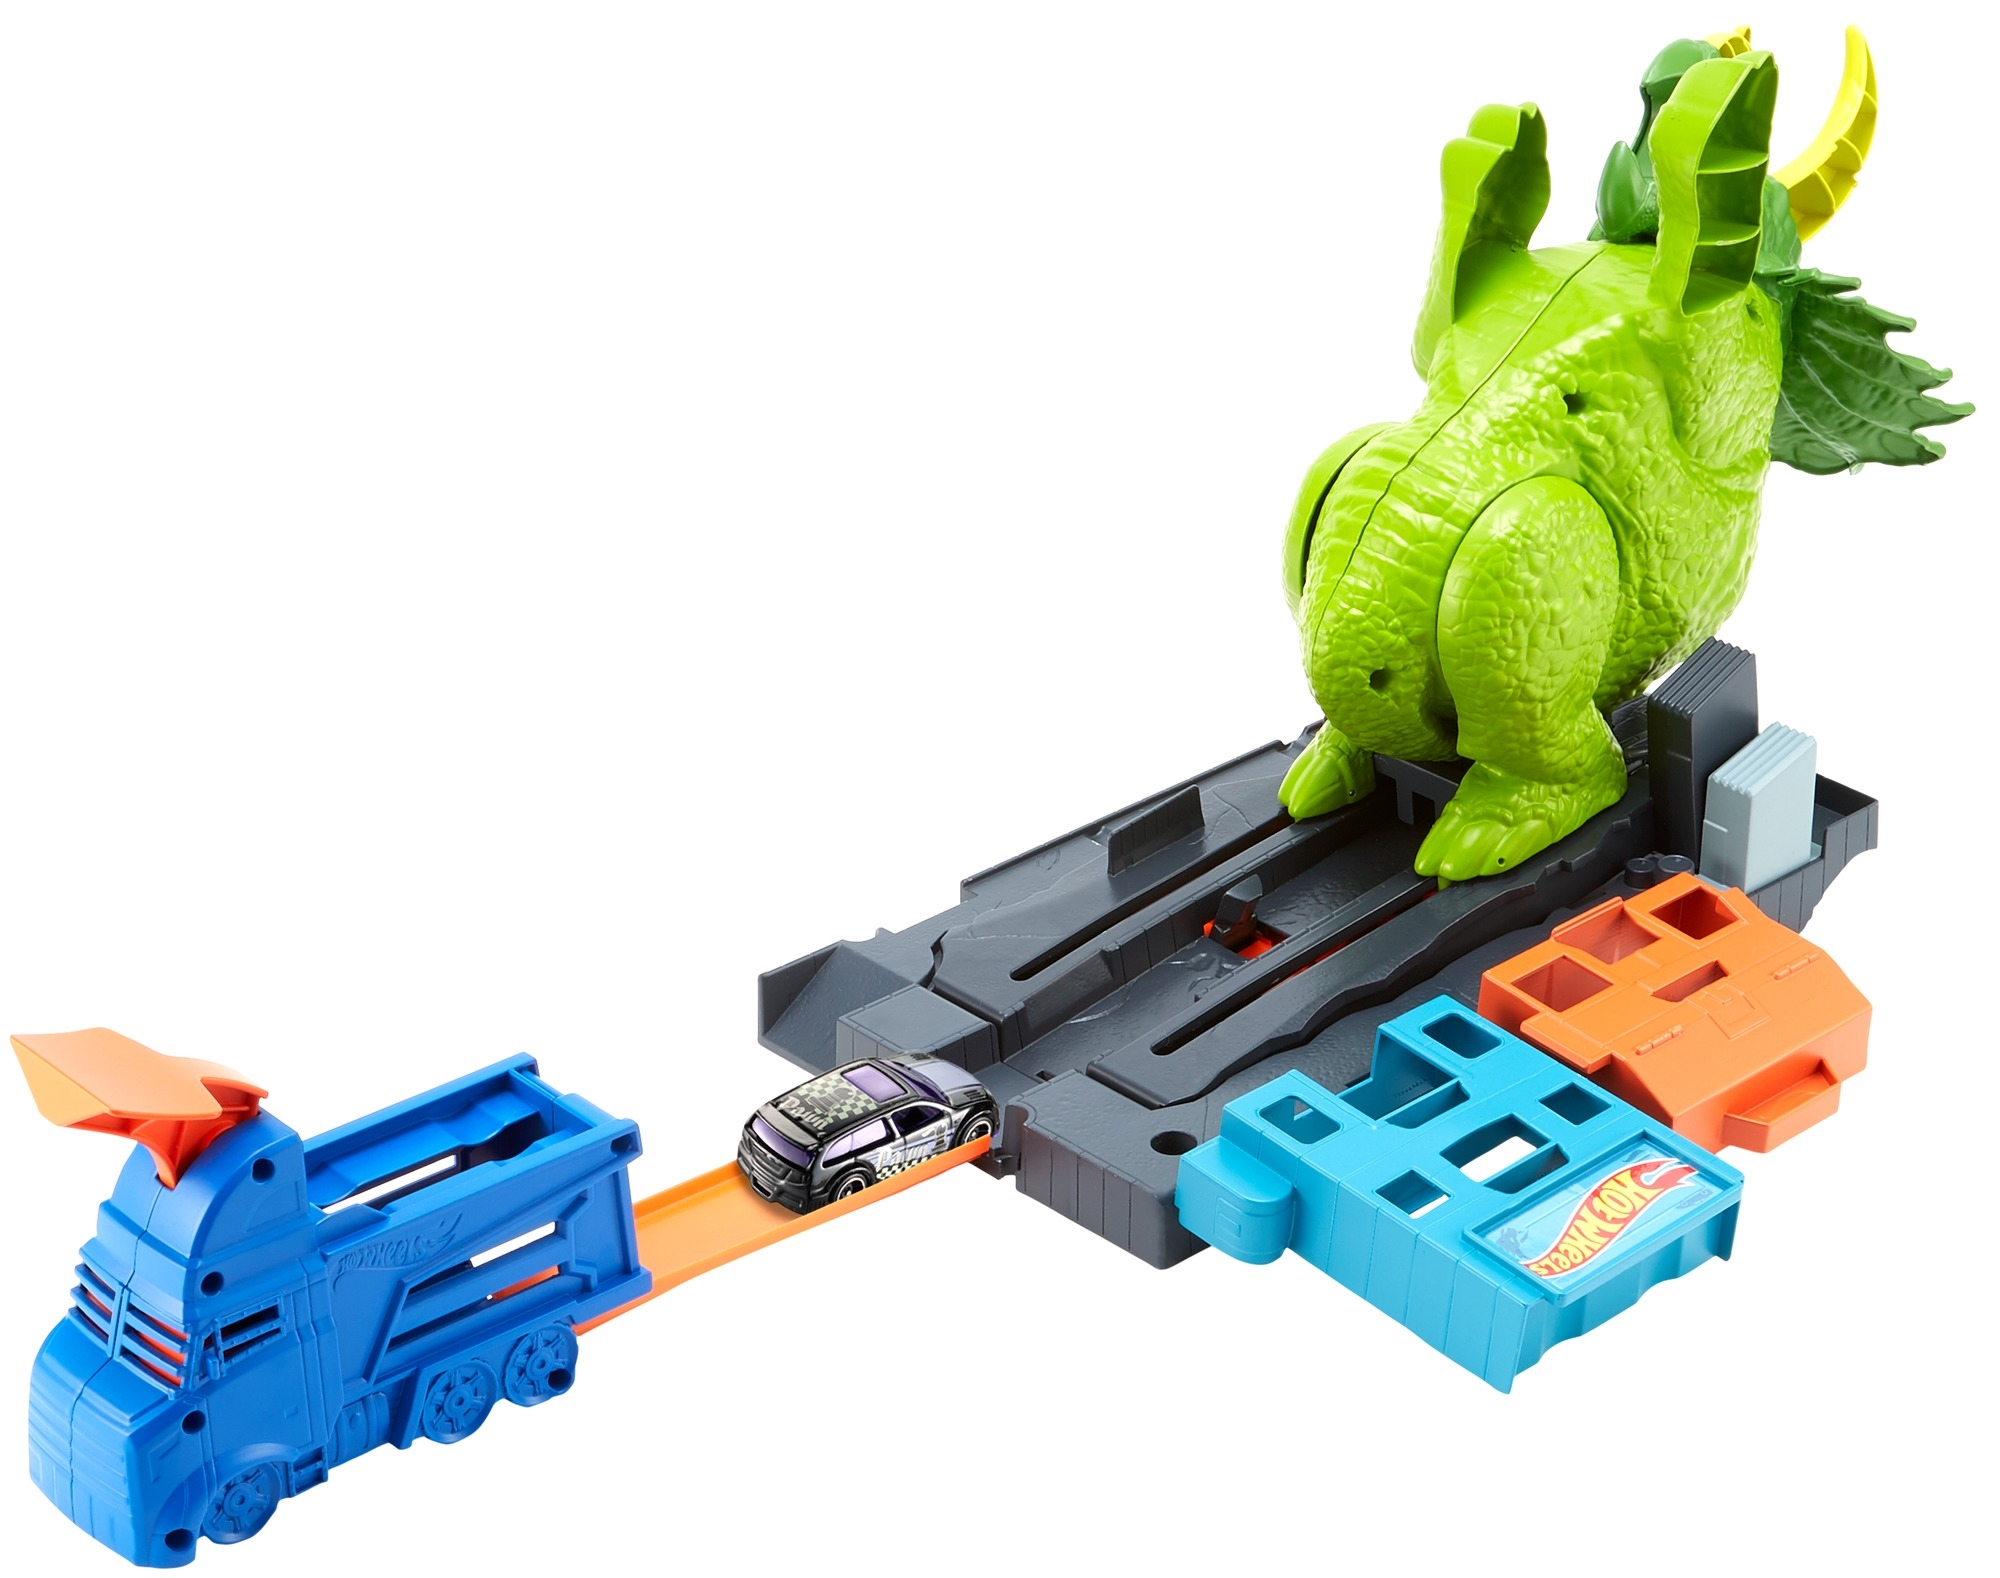 Hot wheels triceratops destructor